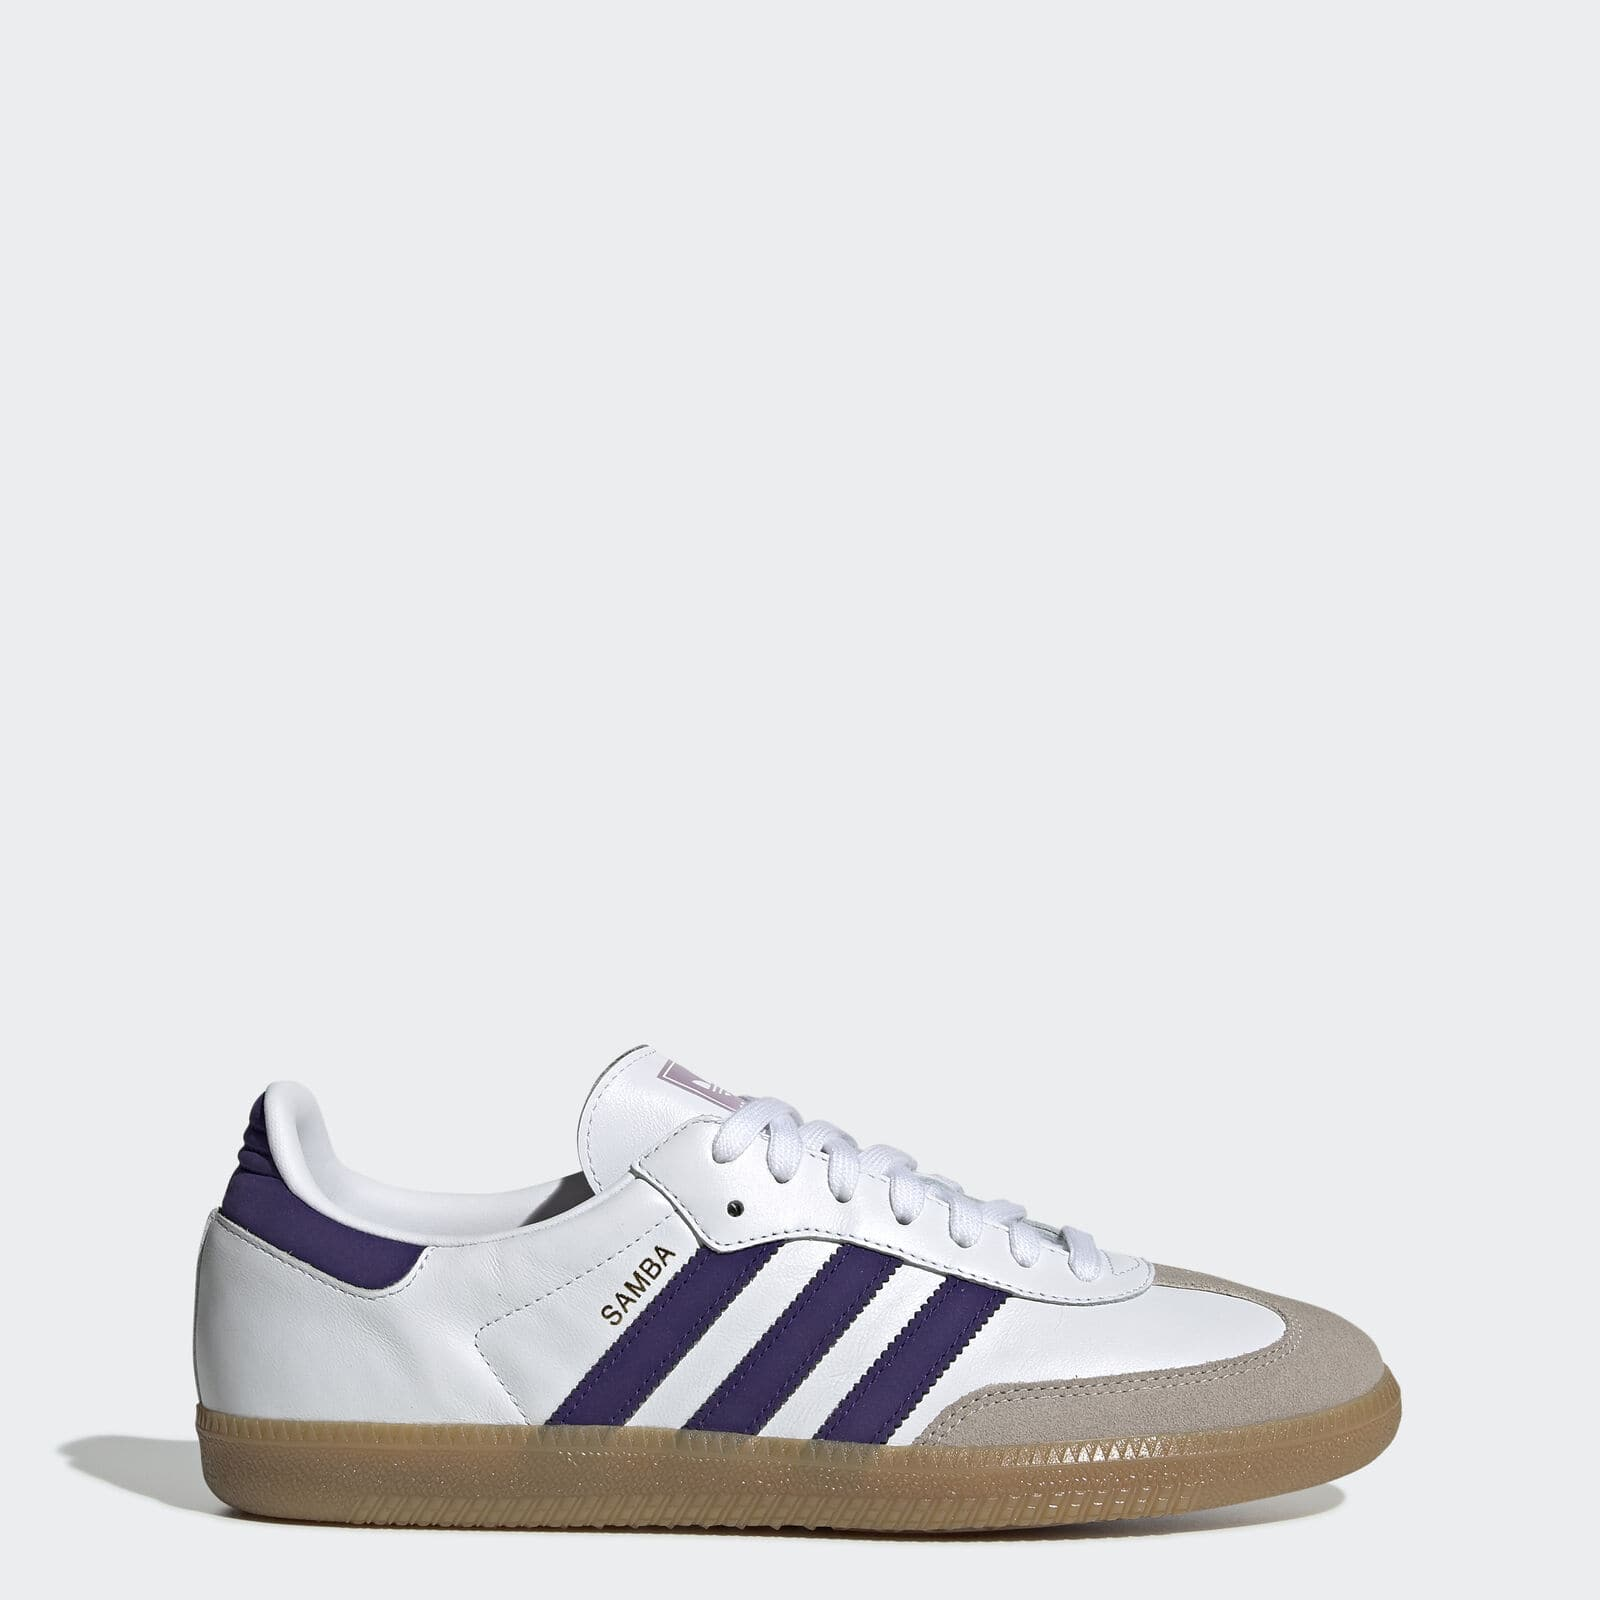 adidas Originals Men's Samba OG Shoes (White or Black)